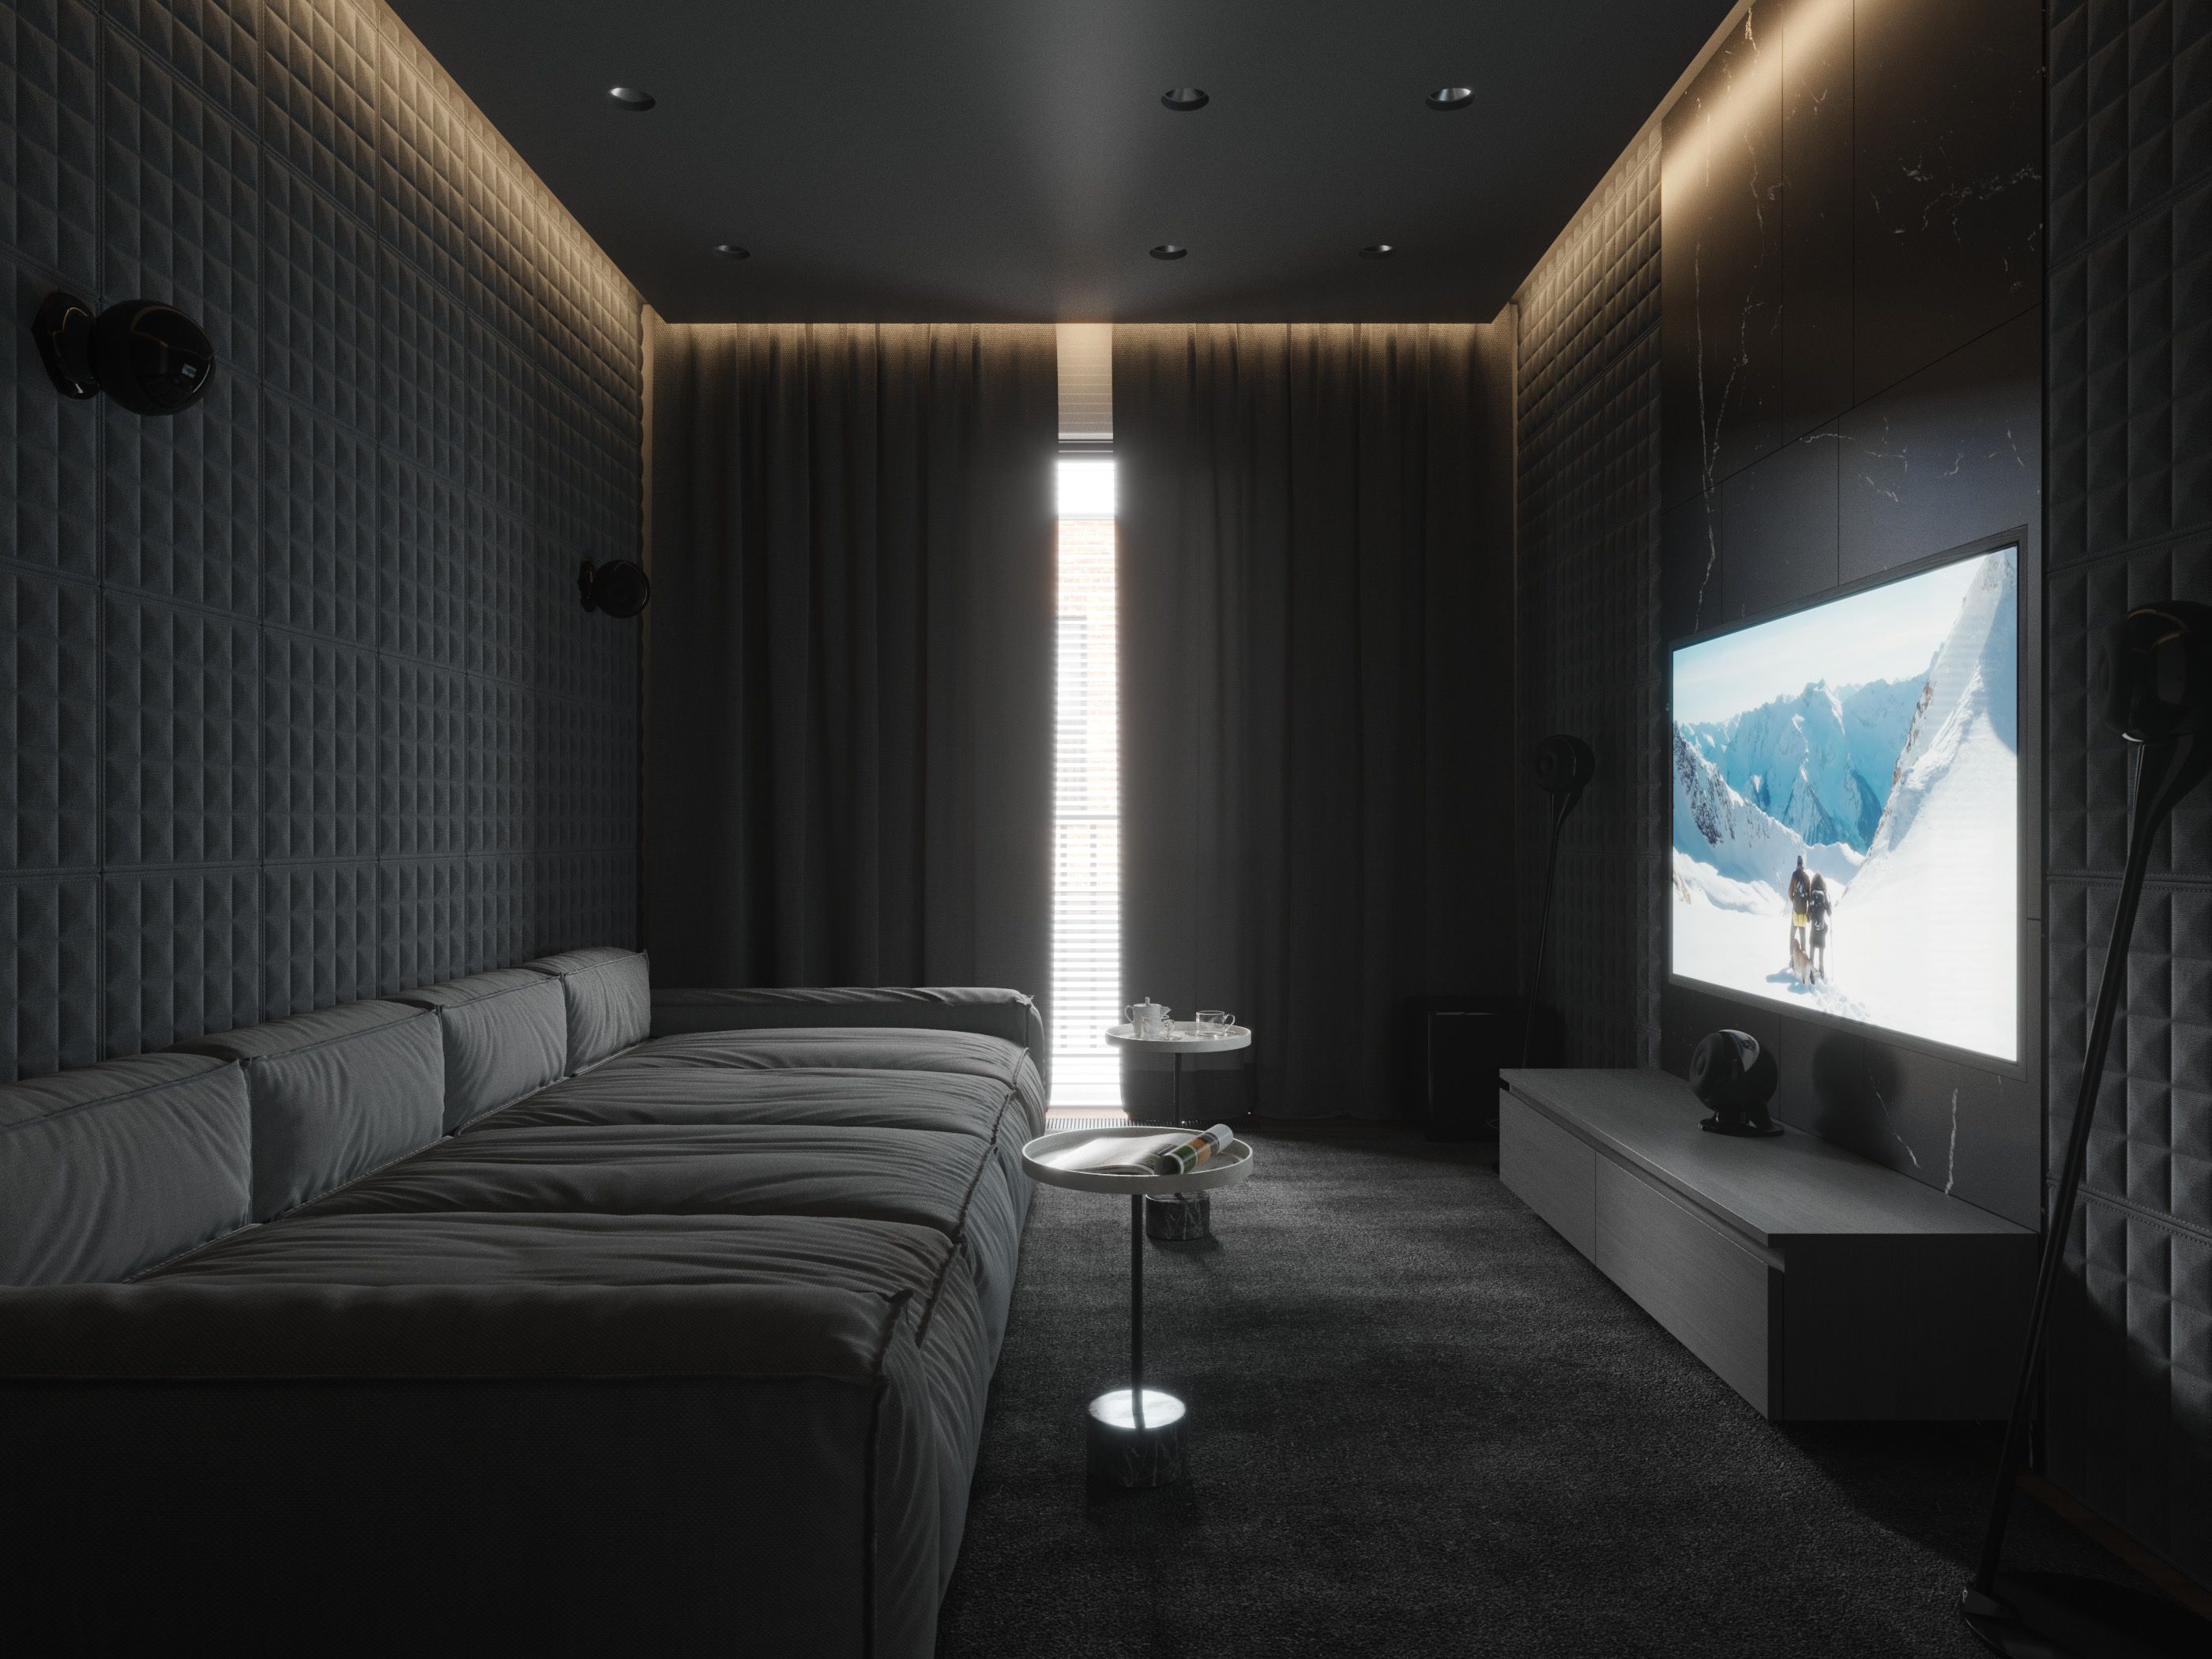 Apartment For Jaguar In Almaty Kazakhstan 2 On Behance In 2020 Home Cinema Room Home Theater Room Design Small Home Theaters